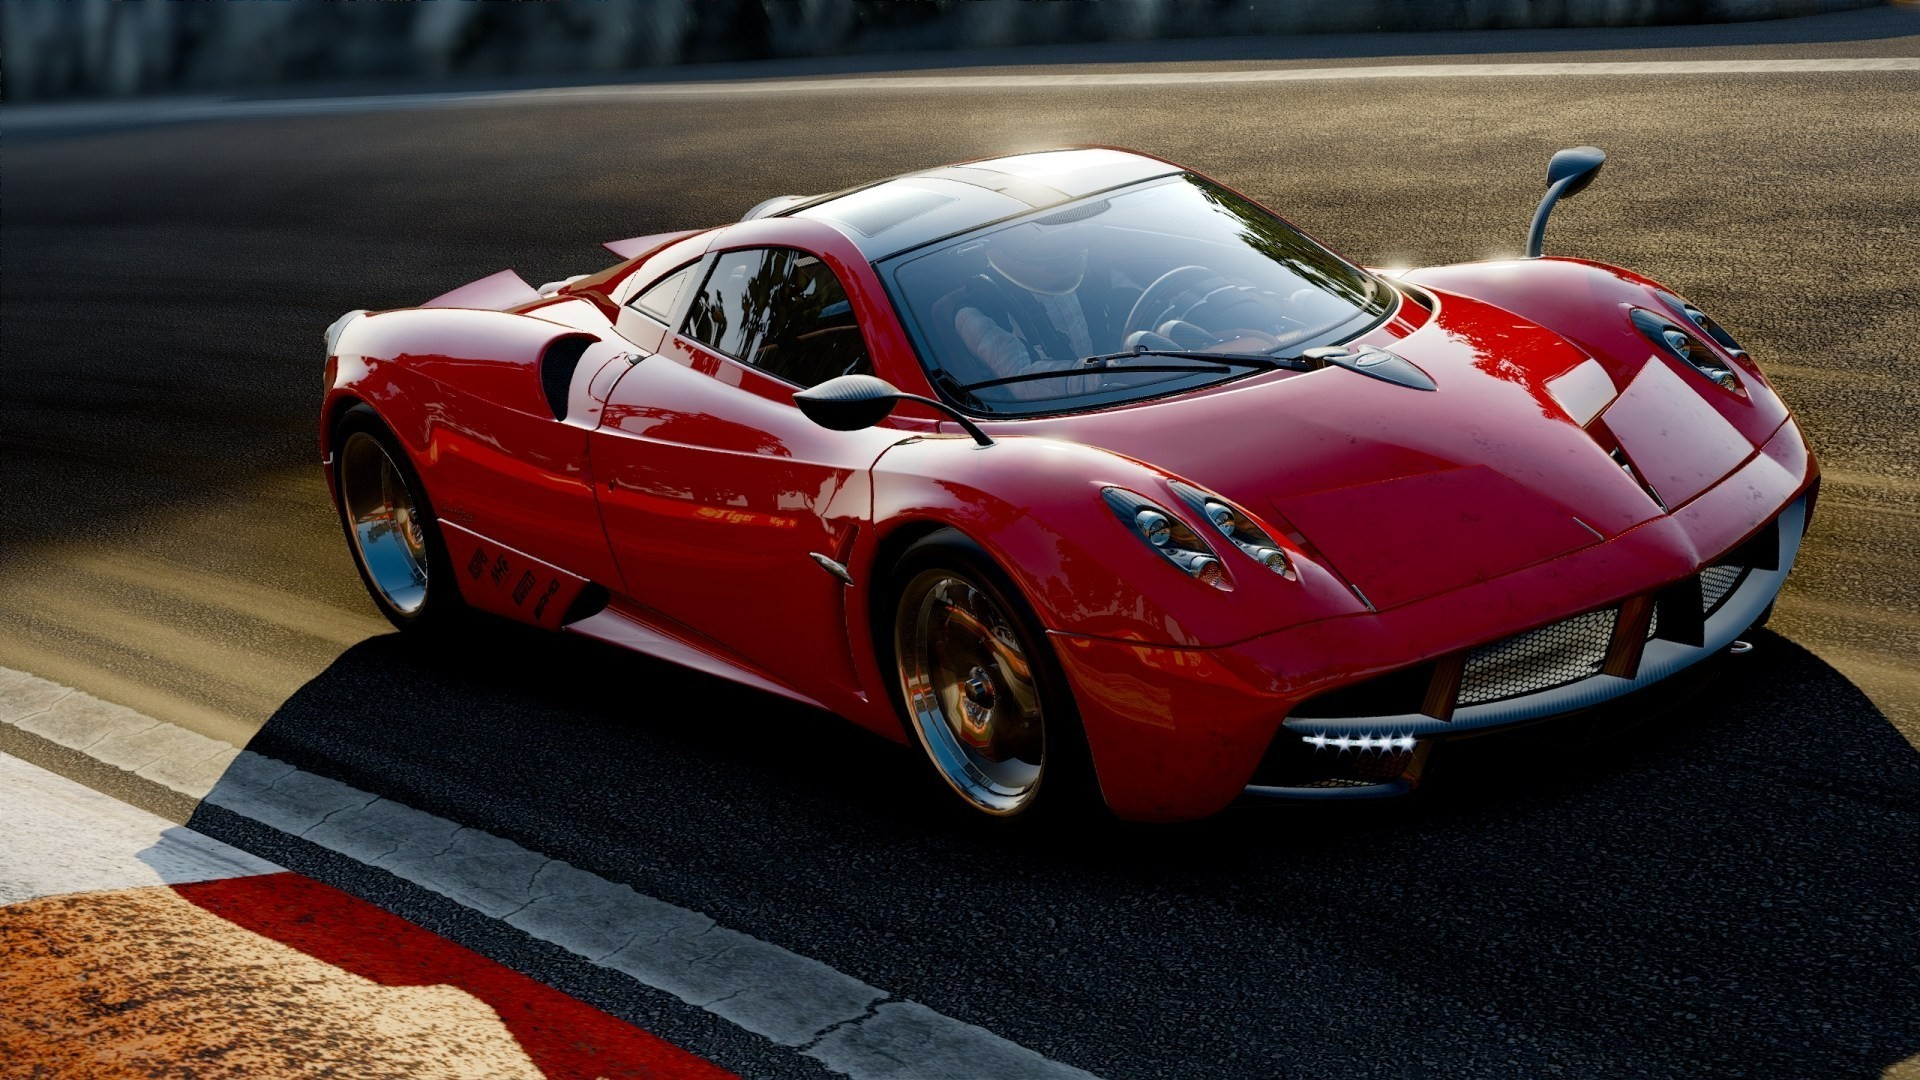 Fantastic Red Pagani Huayra Wallpaper 44716 1920x1080 px ...